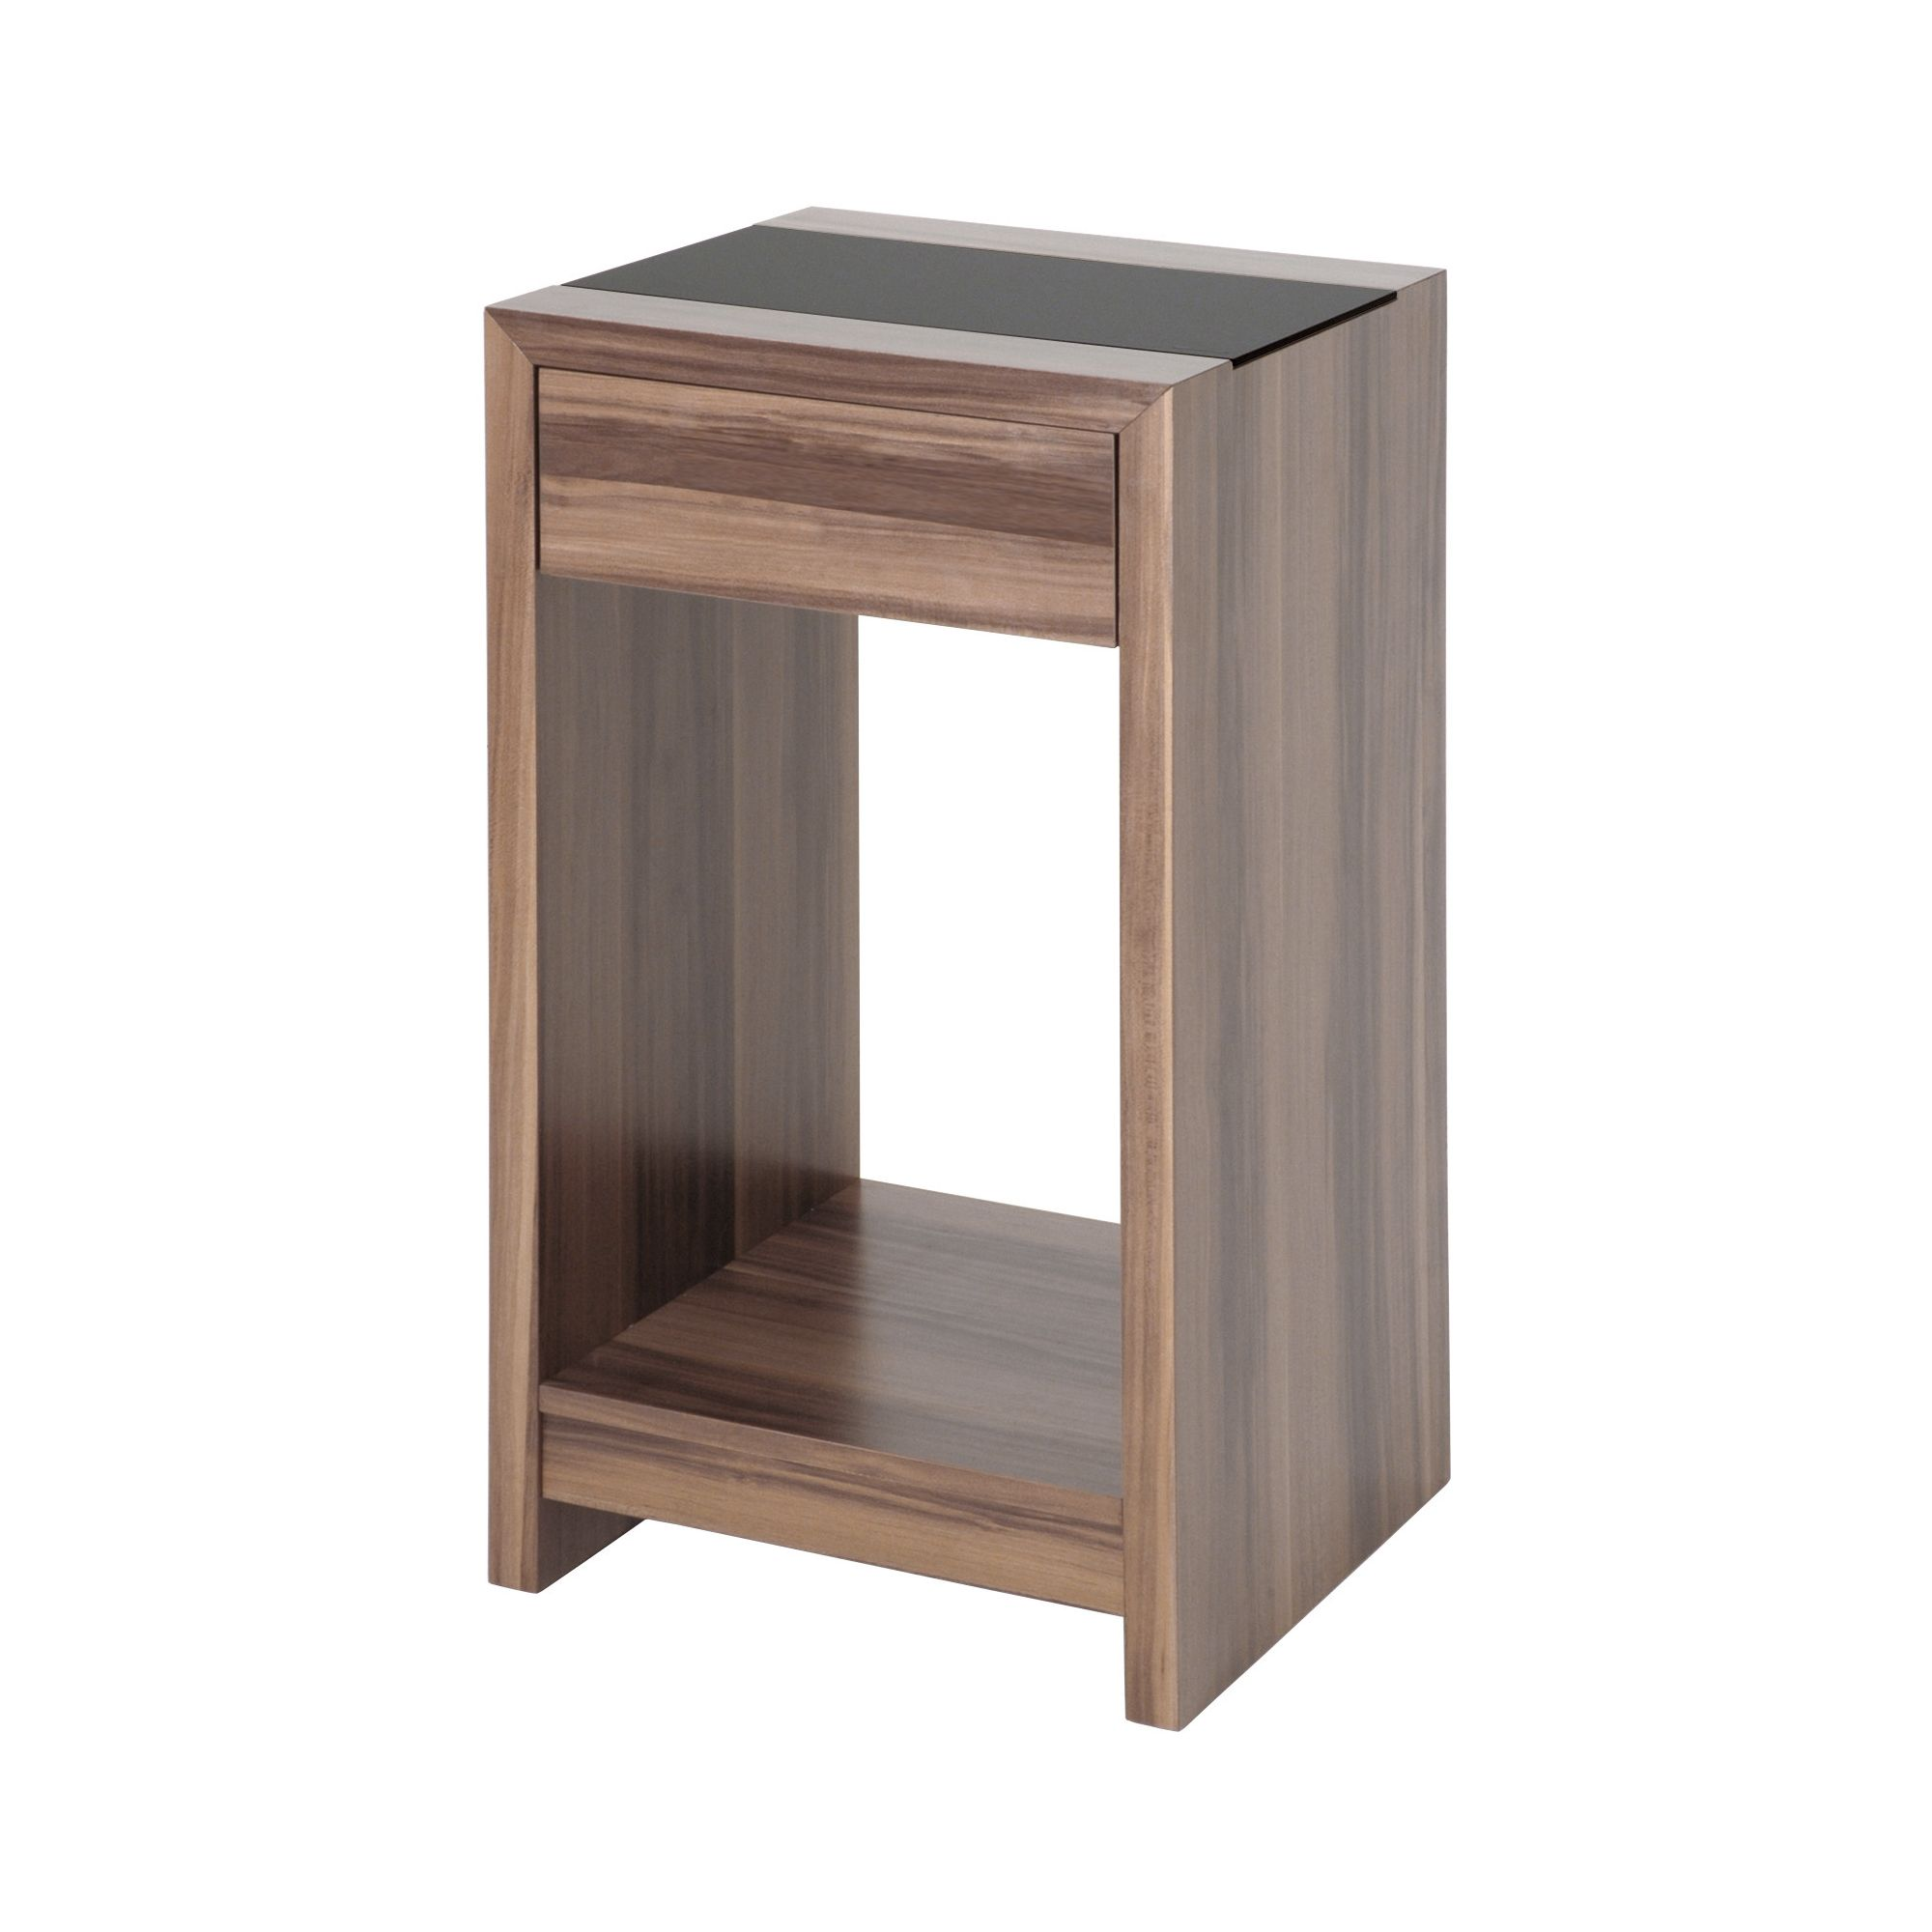 Urbane Designs Supra Nut Console Table in Walnut